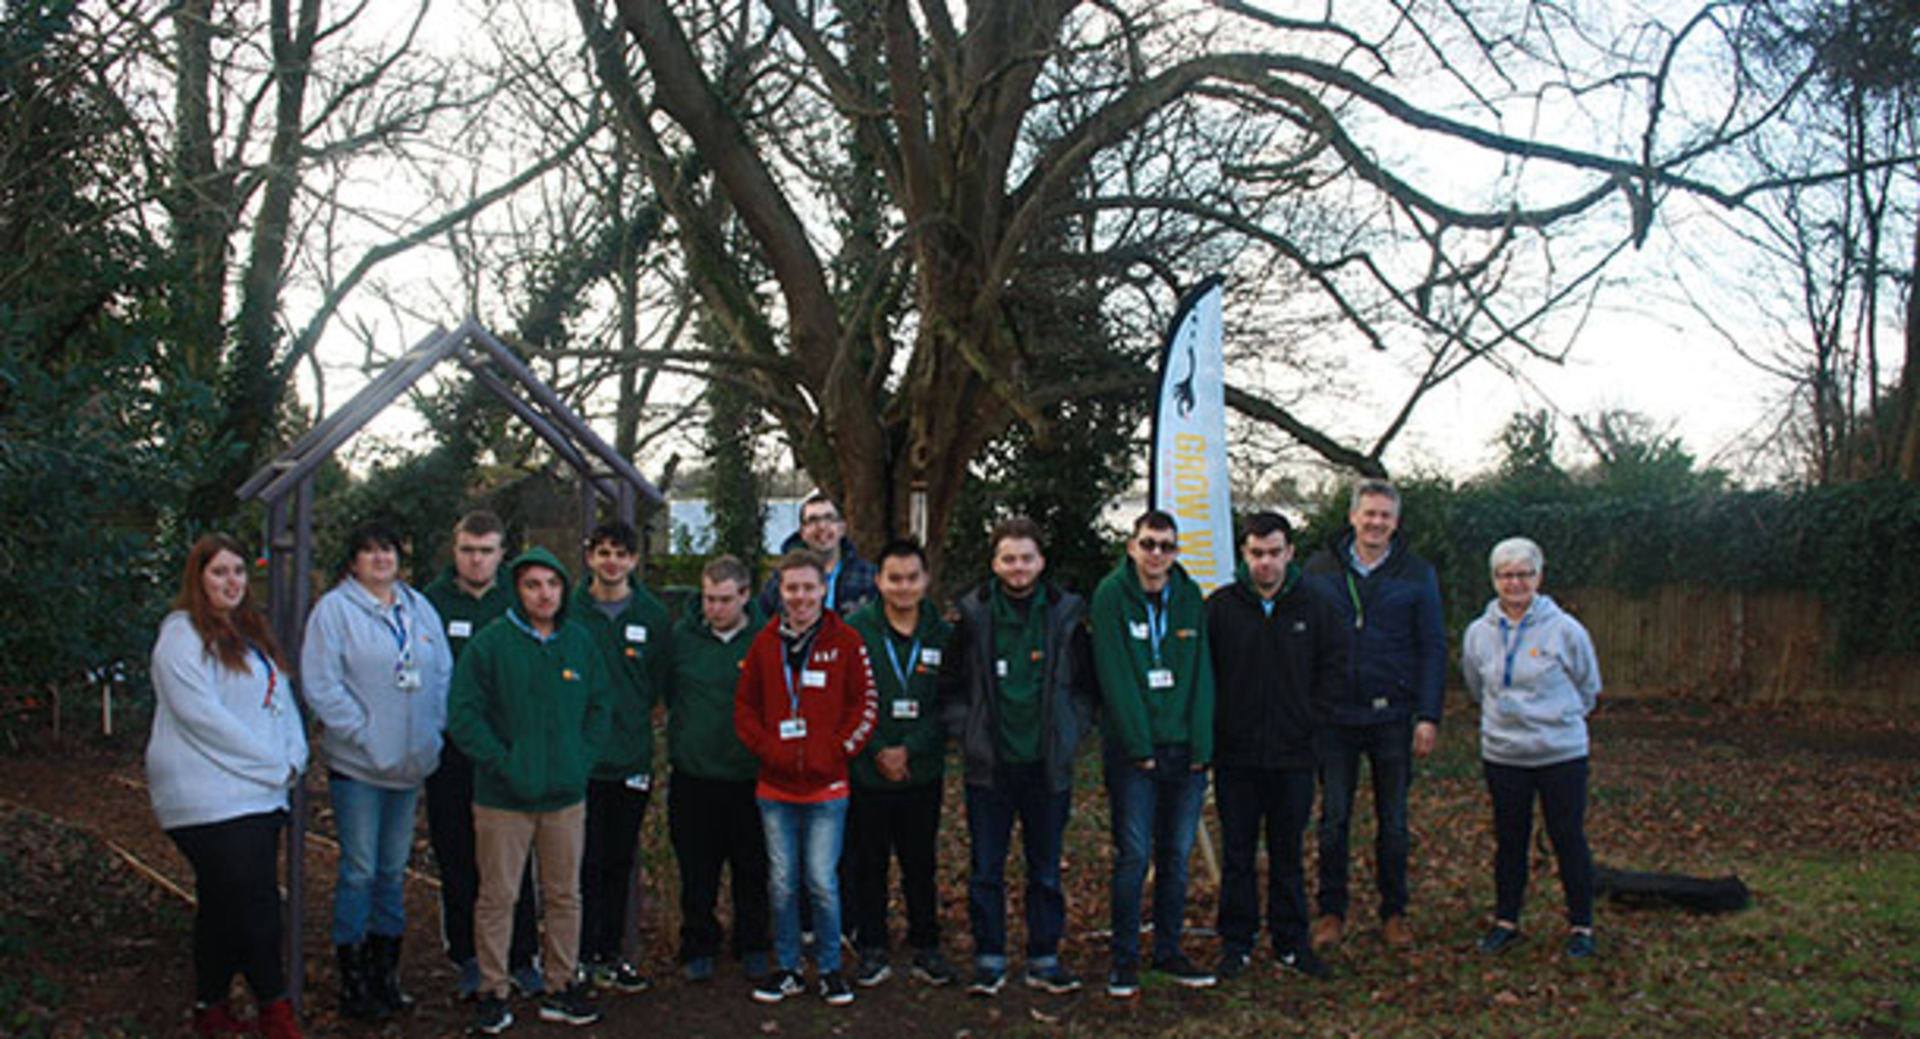 Eastleigh College's The Hive collaborate with Kew Gardens on Grow Wild Project